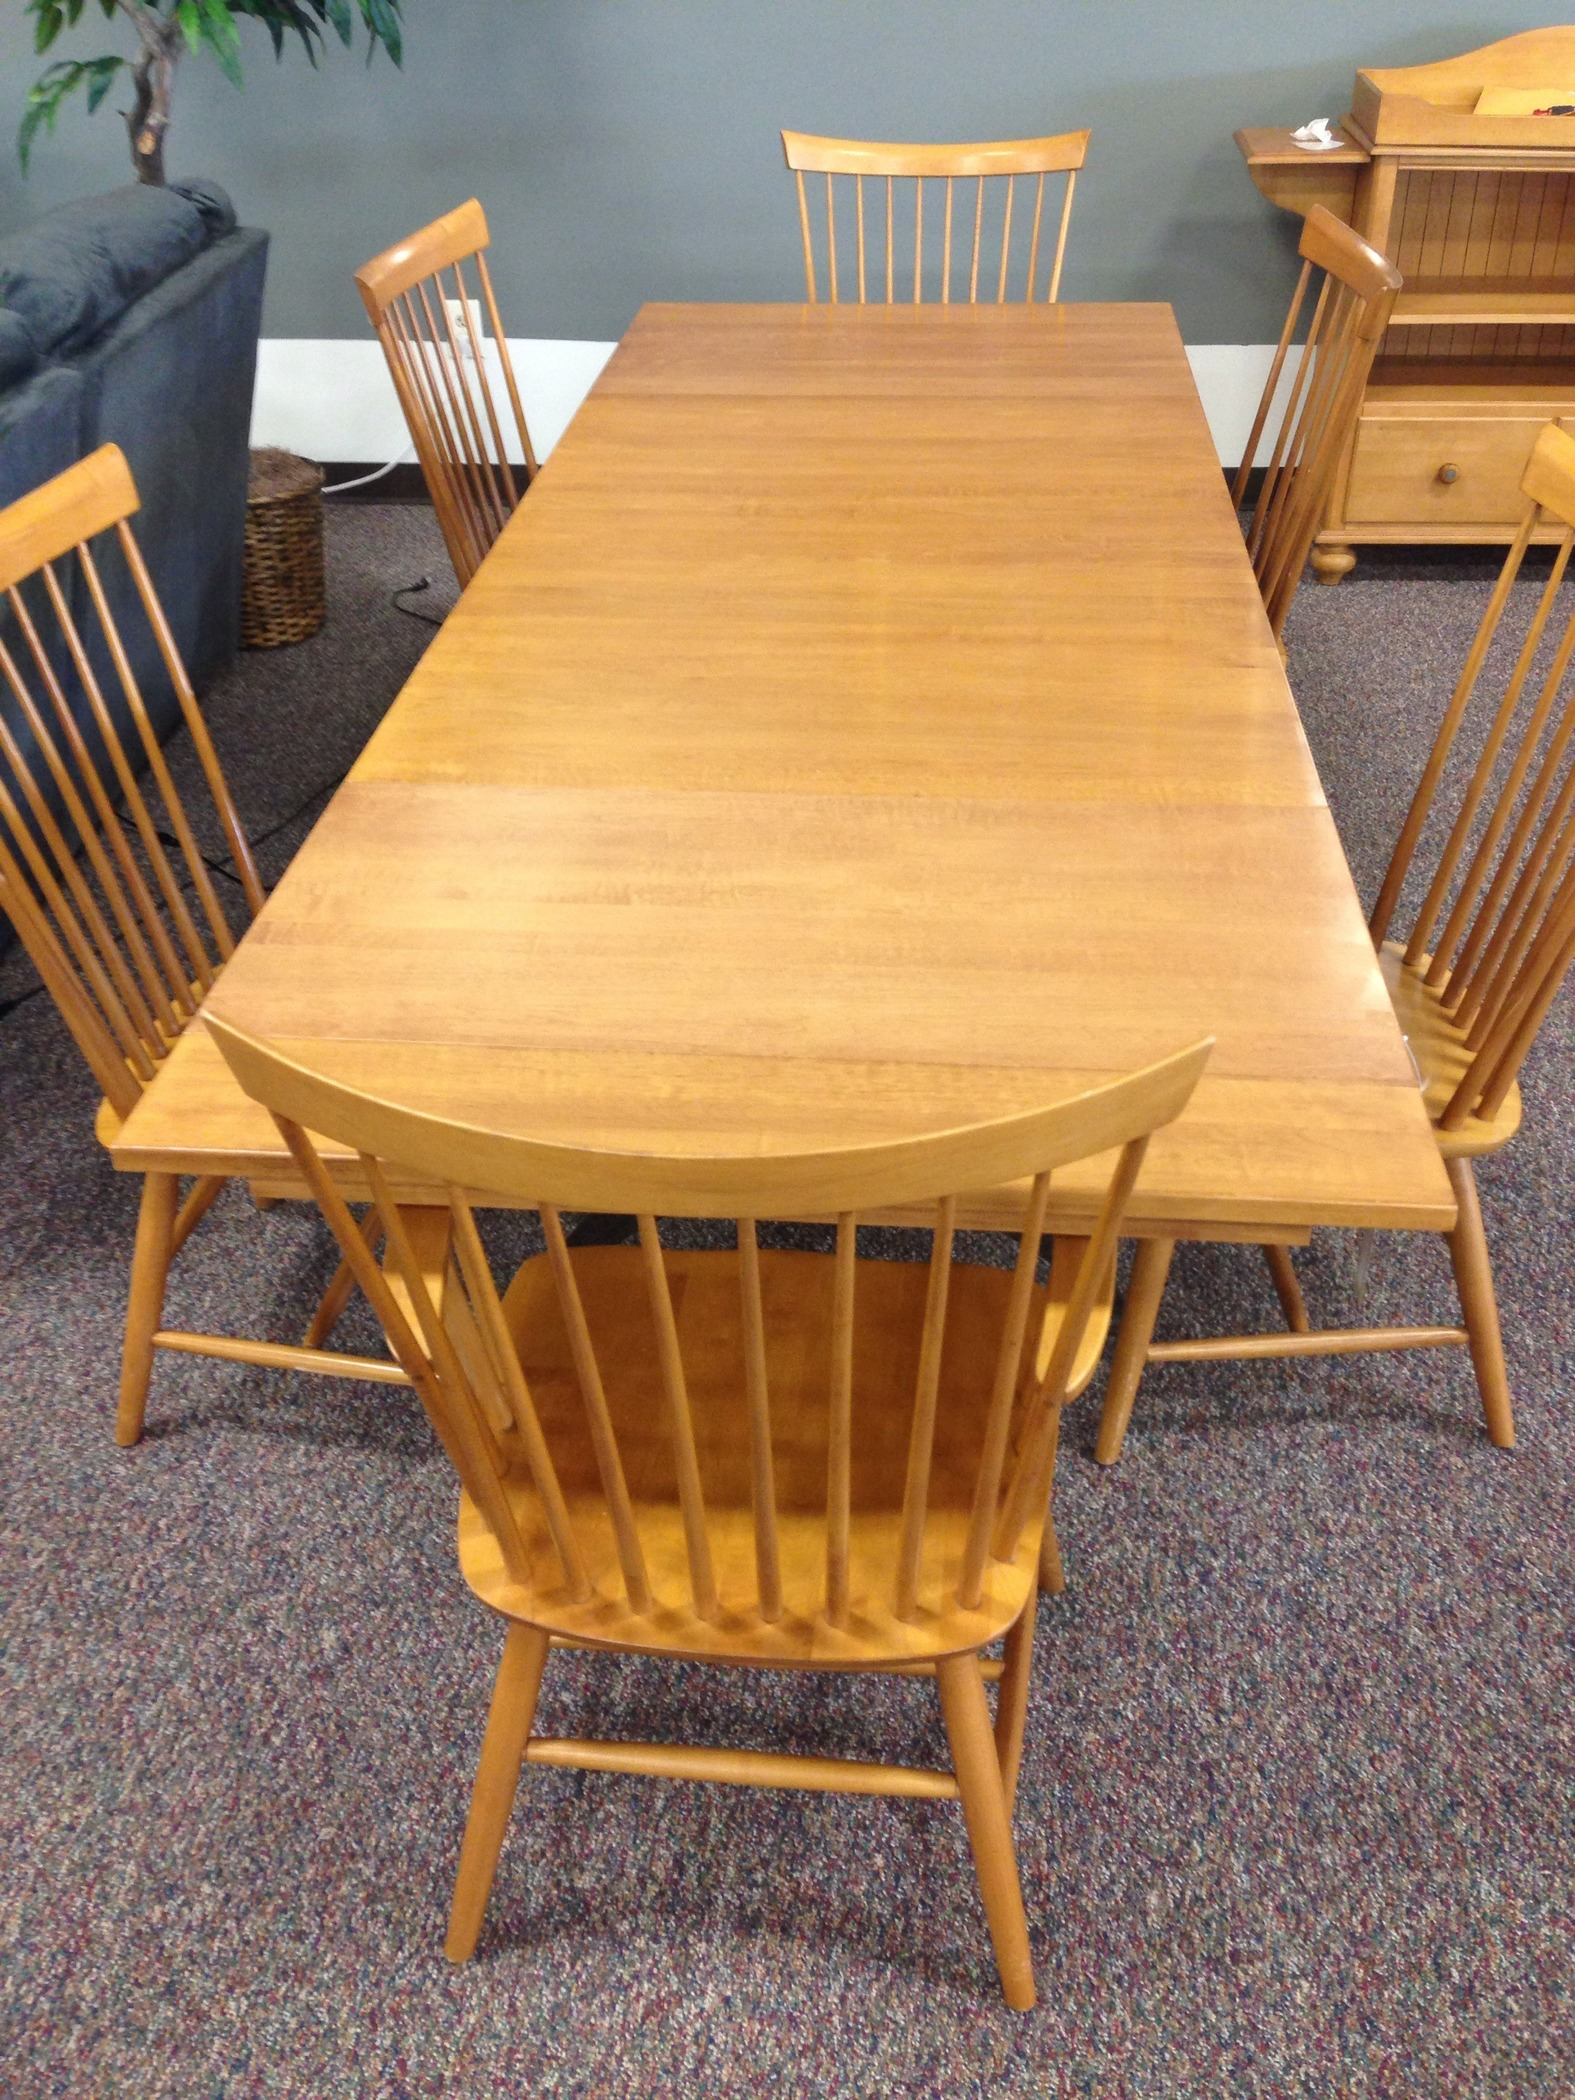 Ethan allen trestle kitchen table allegheny furniture consignment - Ethan allen kitchen tables ...